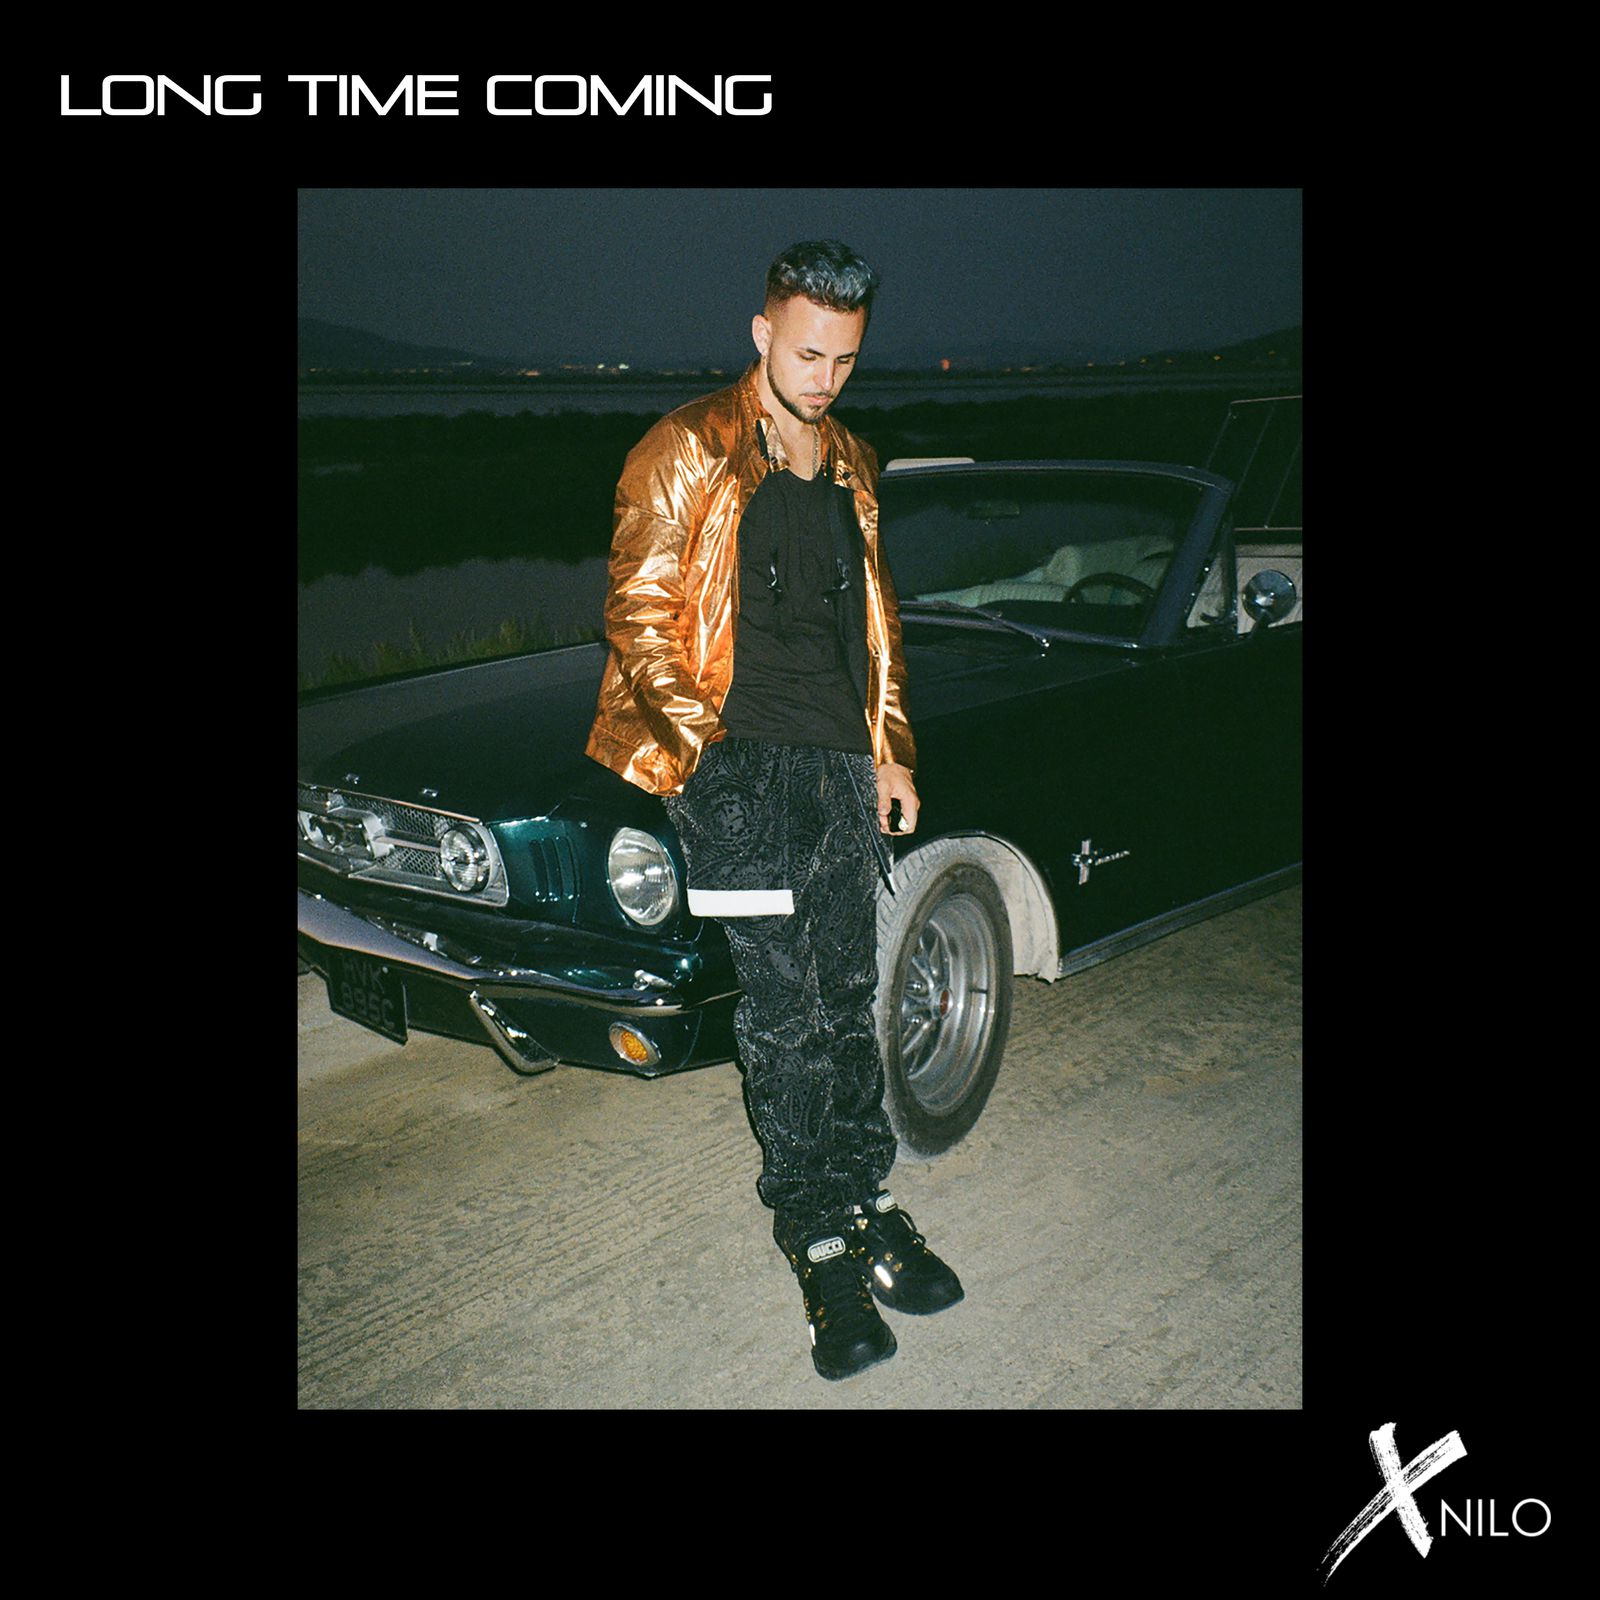 SPANISH R&B SENSATION XNILO SHINES ON BOLD NEW DANCE CUT 'LONG TIME COMING'